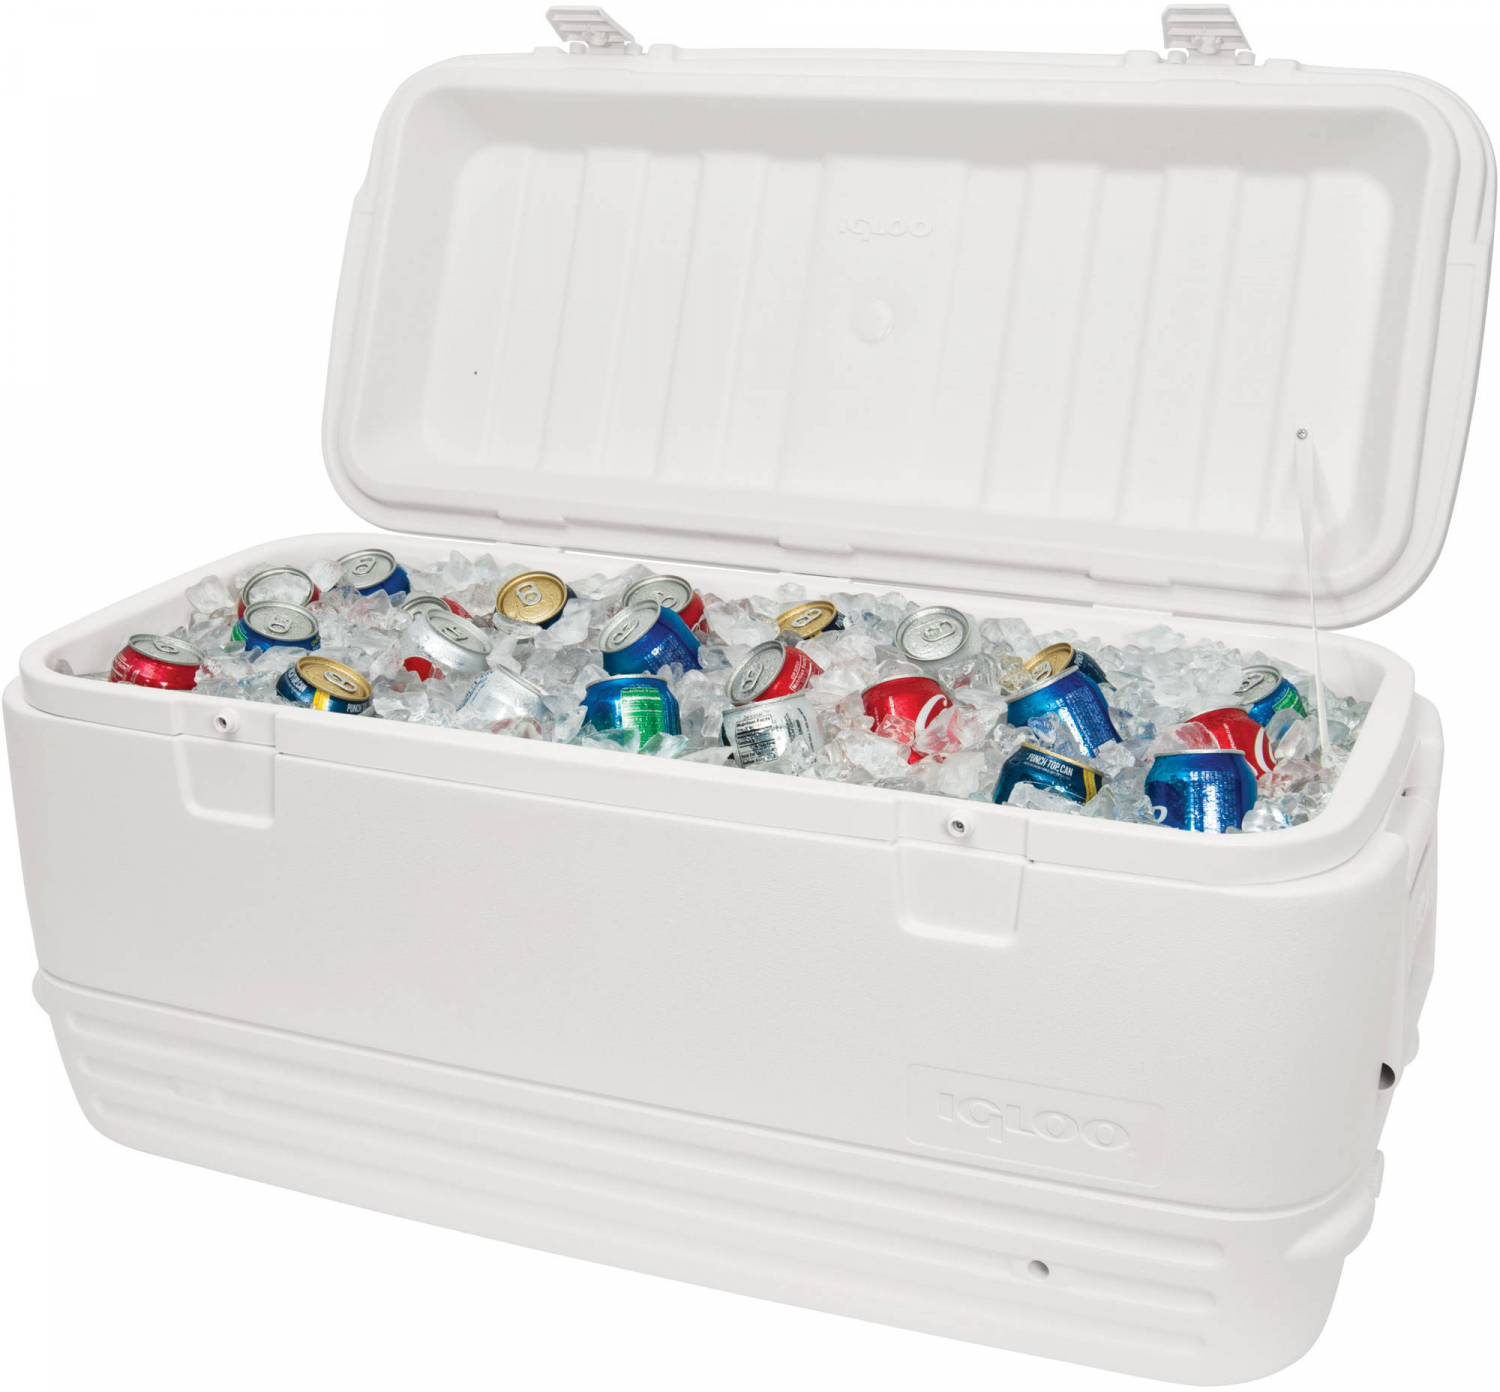 Large Igloo Cooler 120 Qt Quart Max Cold Ice Chest Insulated Marine Fishing